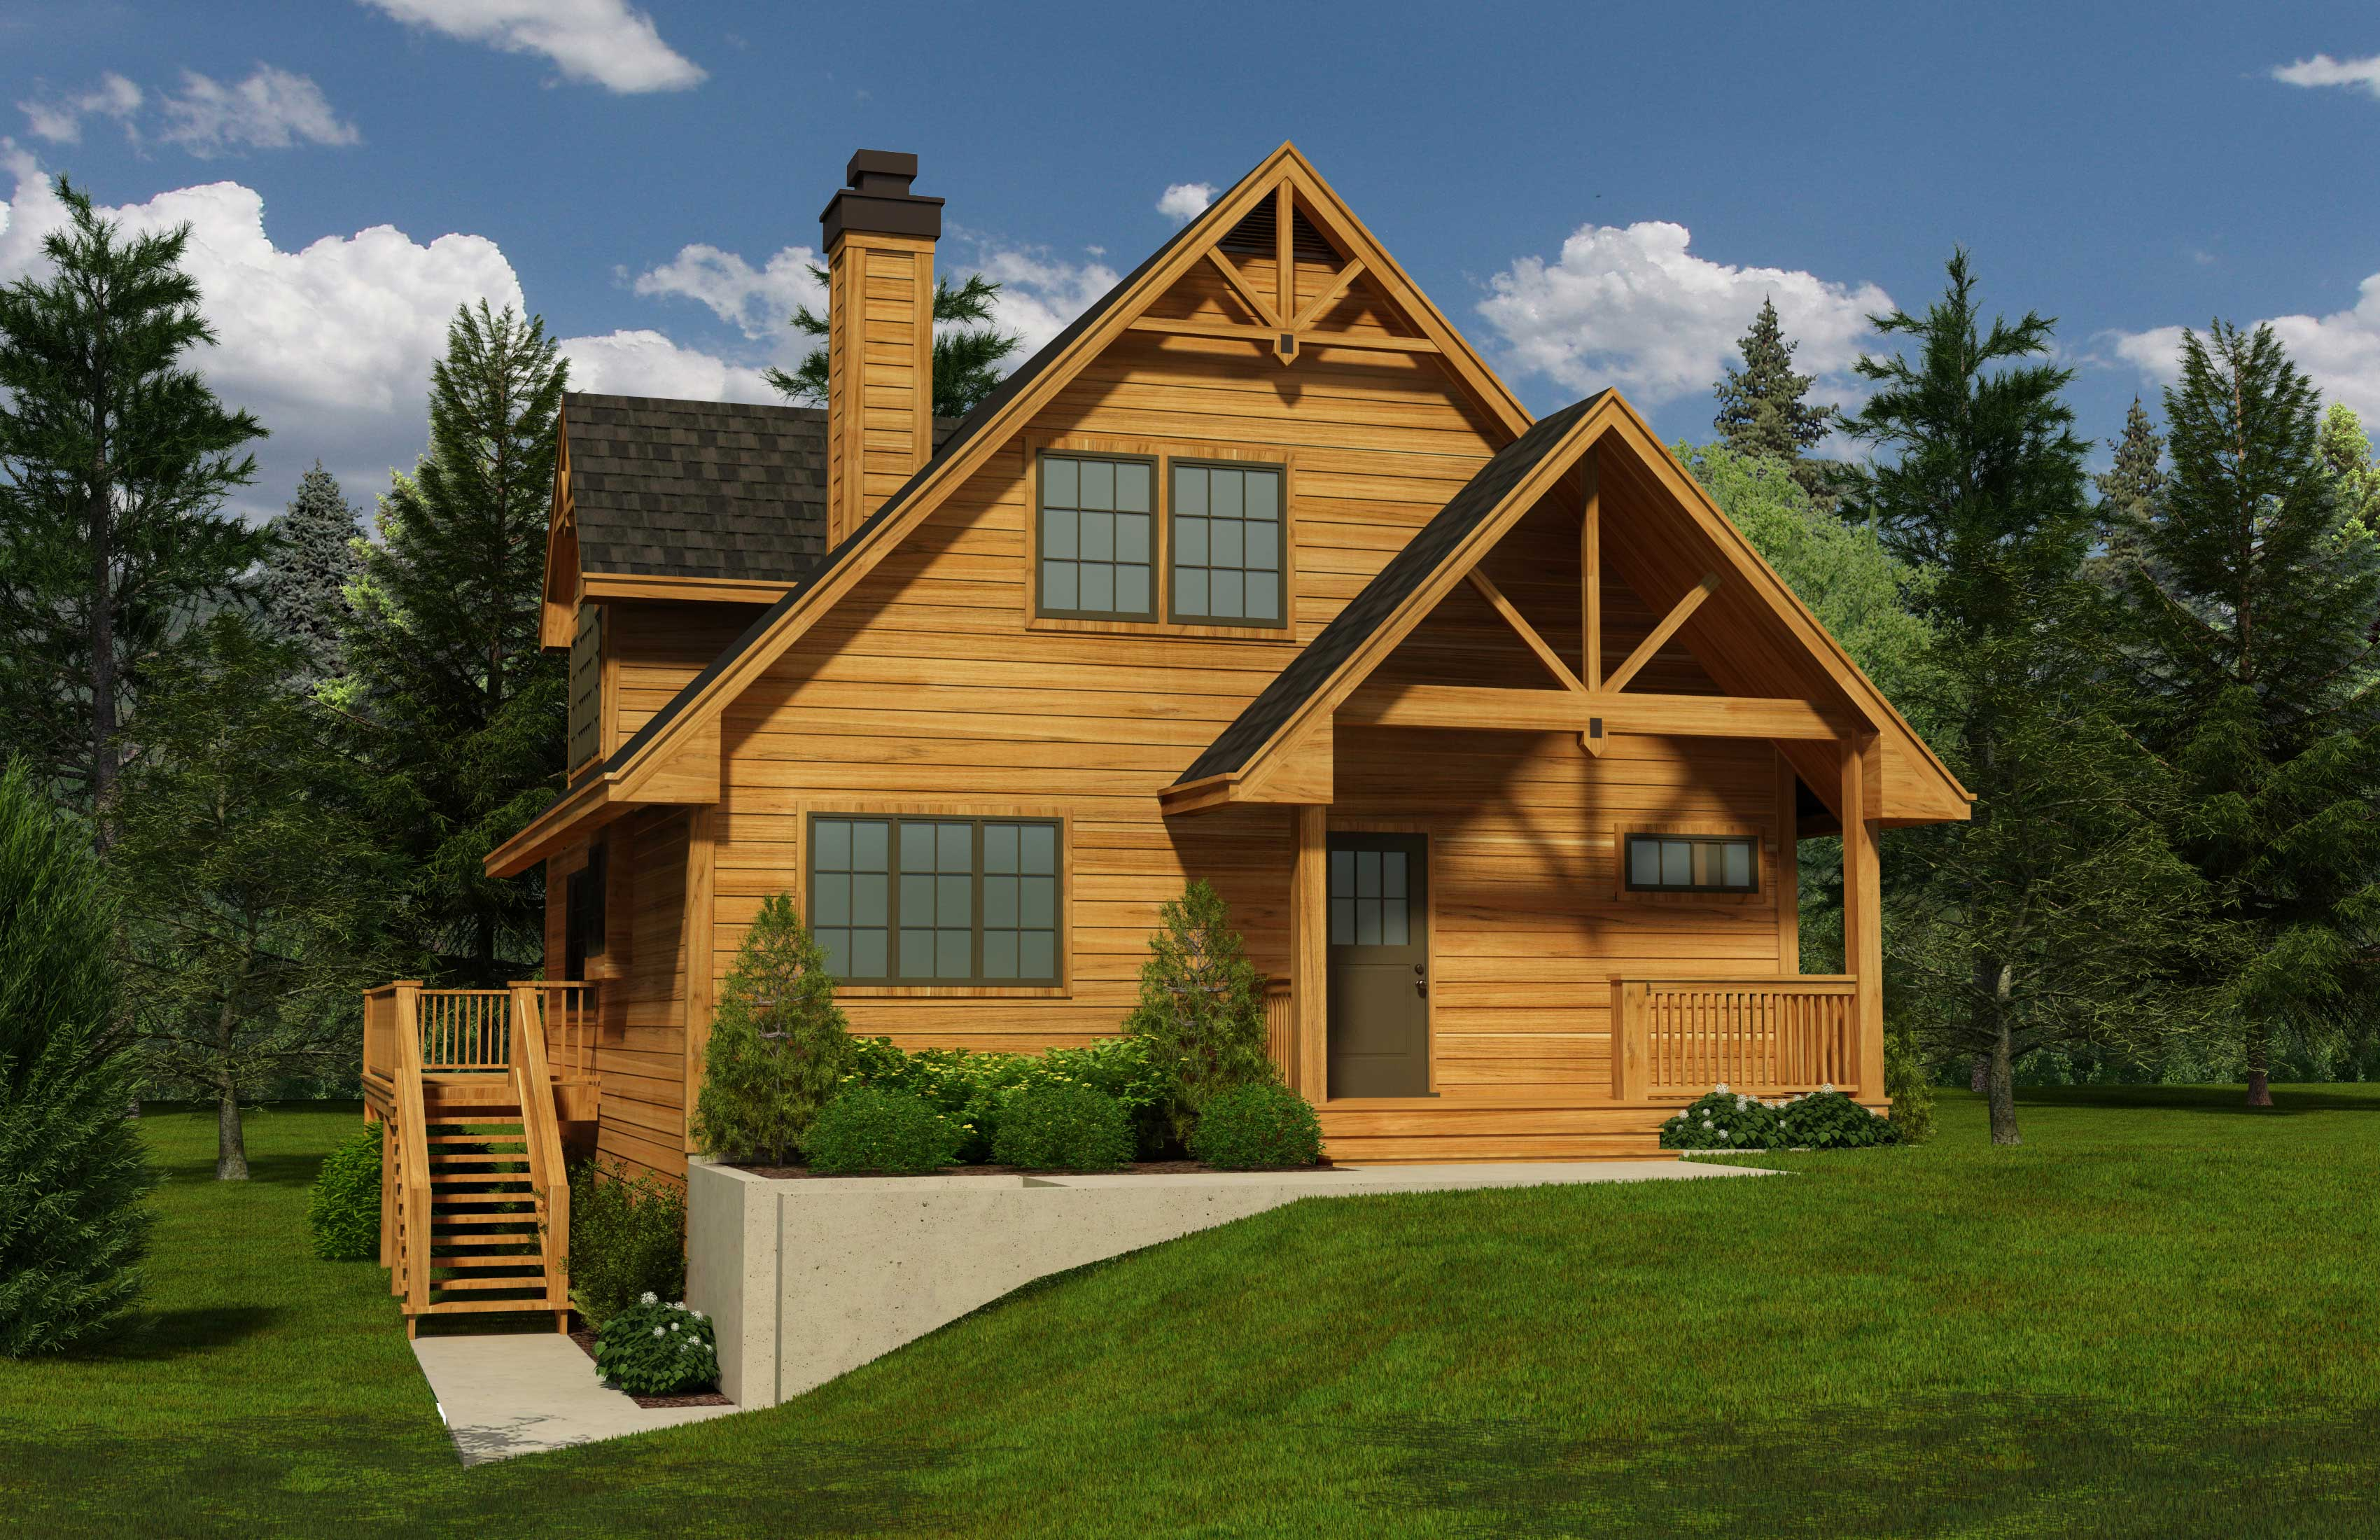 3 Bedrm 1741 Sq Ft Craftsman House Plan 160 1018